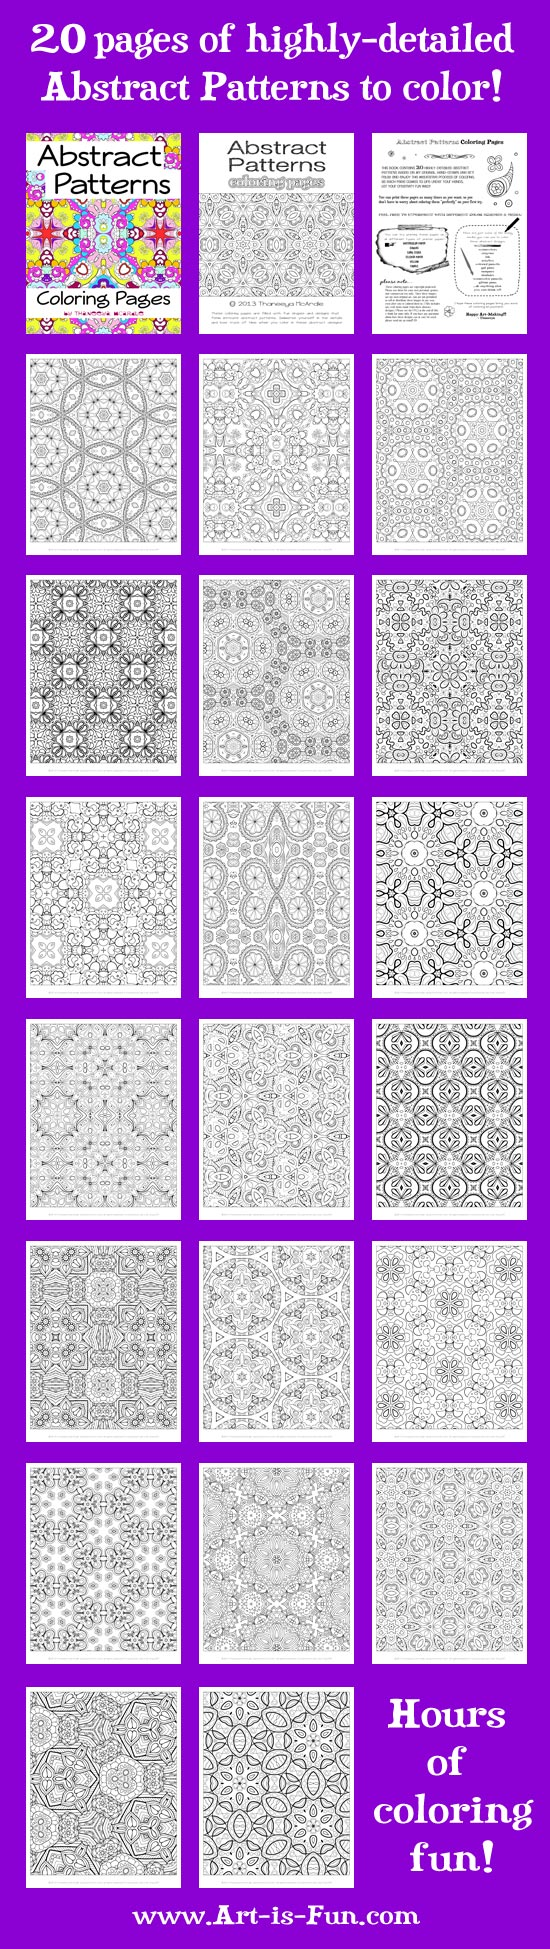 printable abstract coloring pages overview - Coloring Pages With Designs